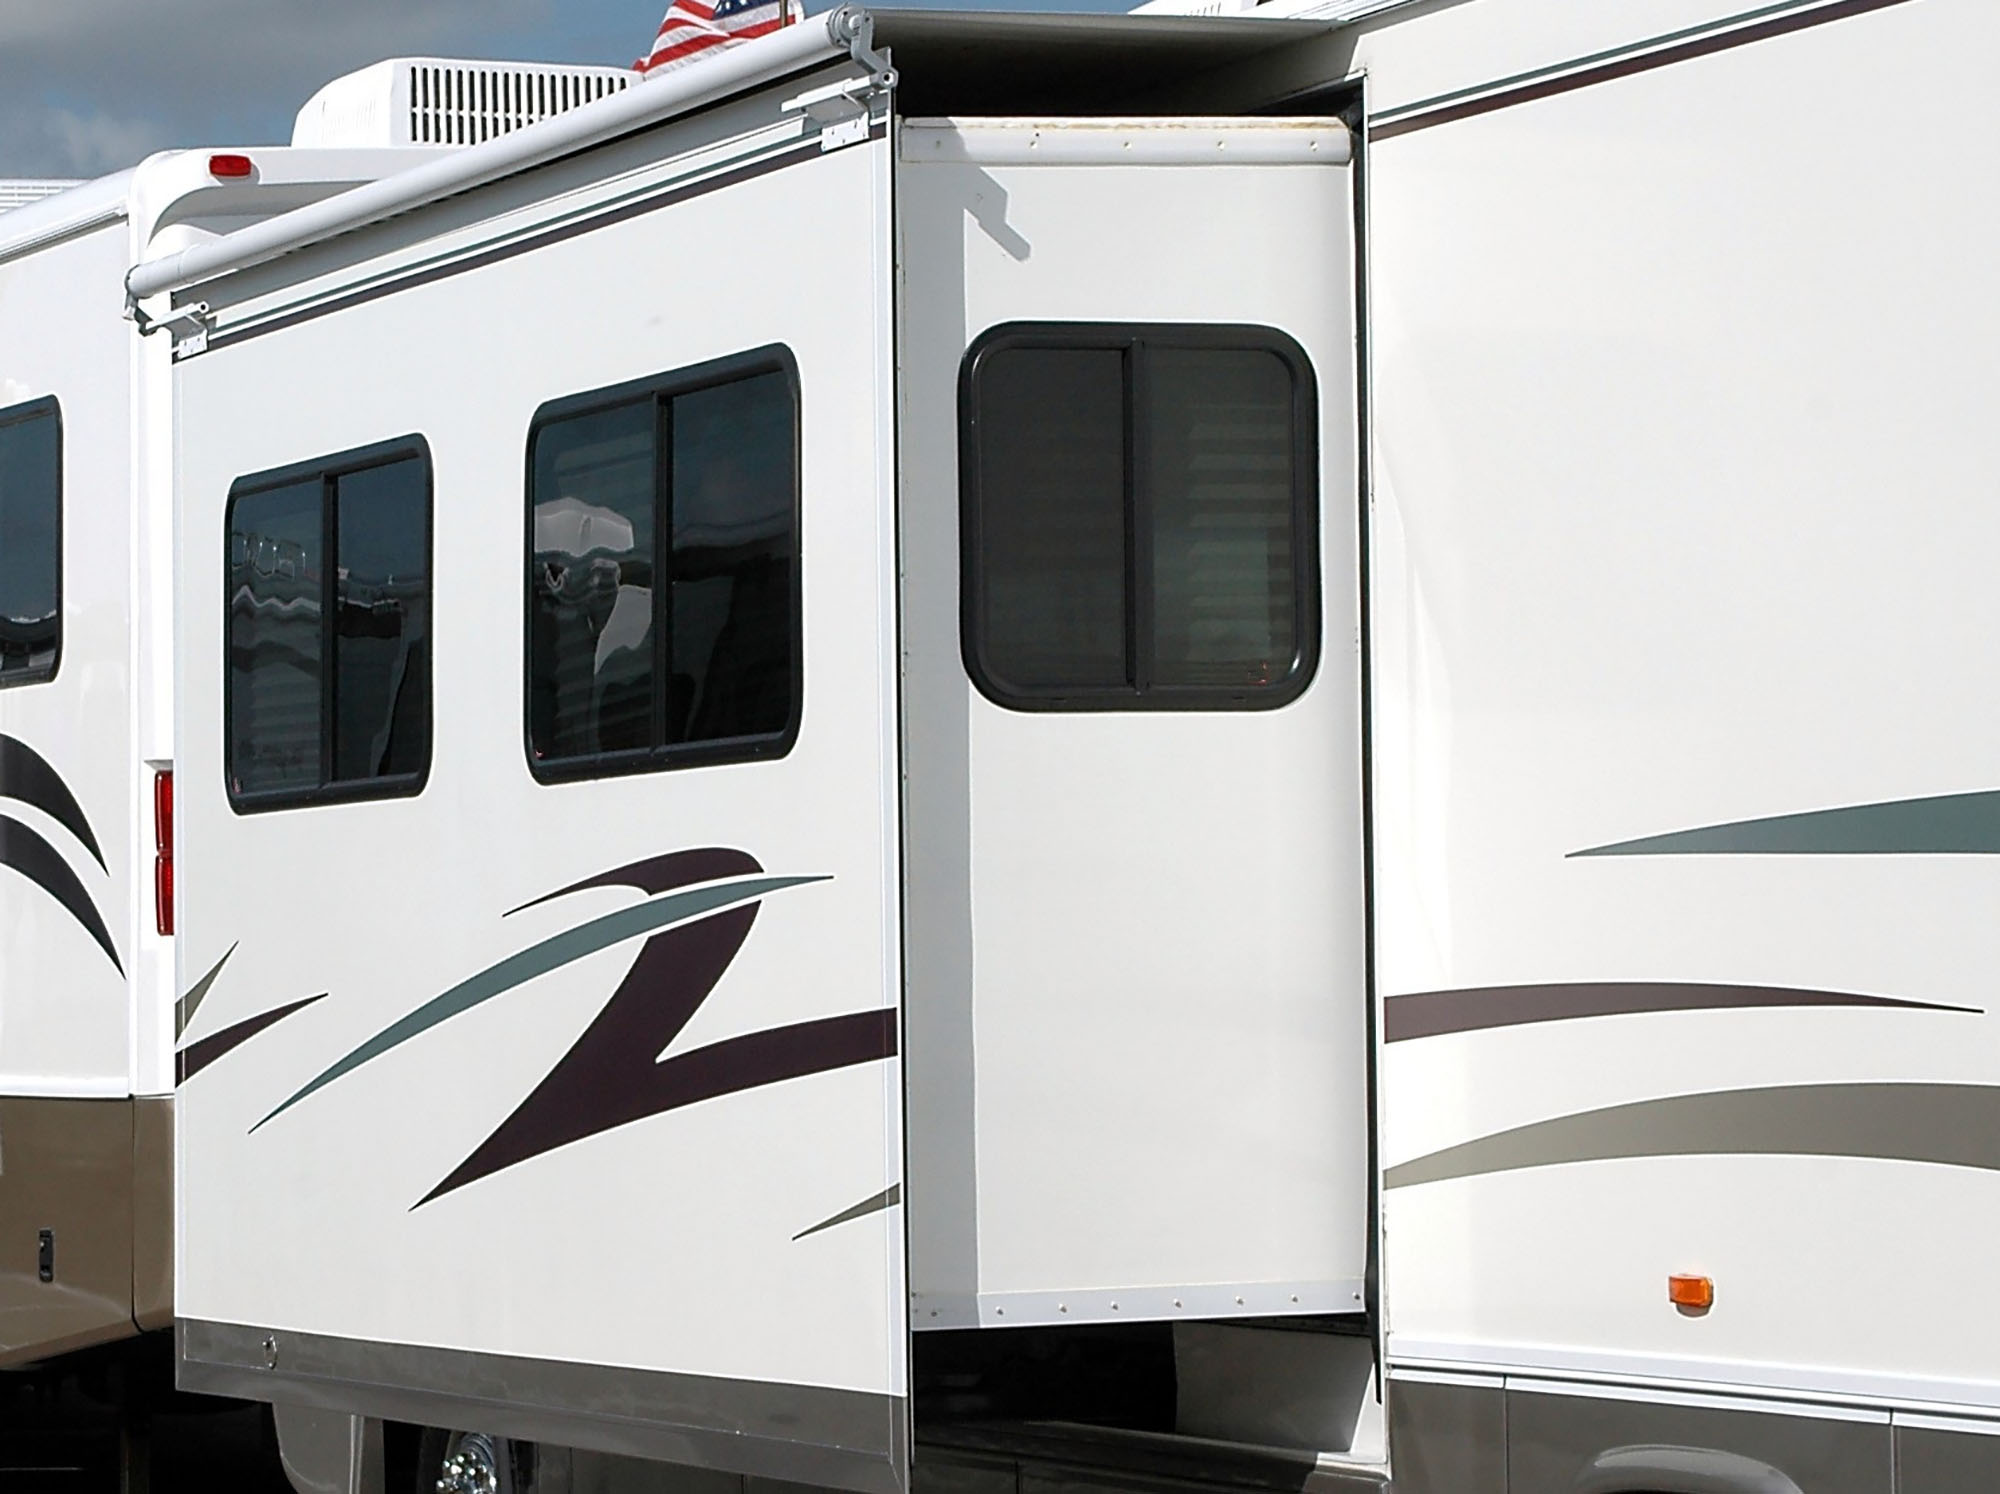 A motorhome slideout extended.